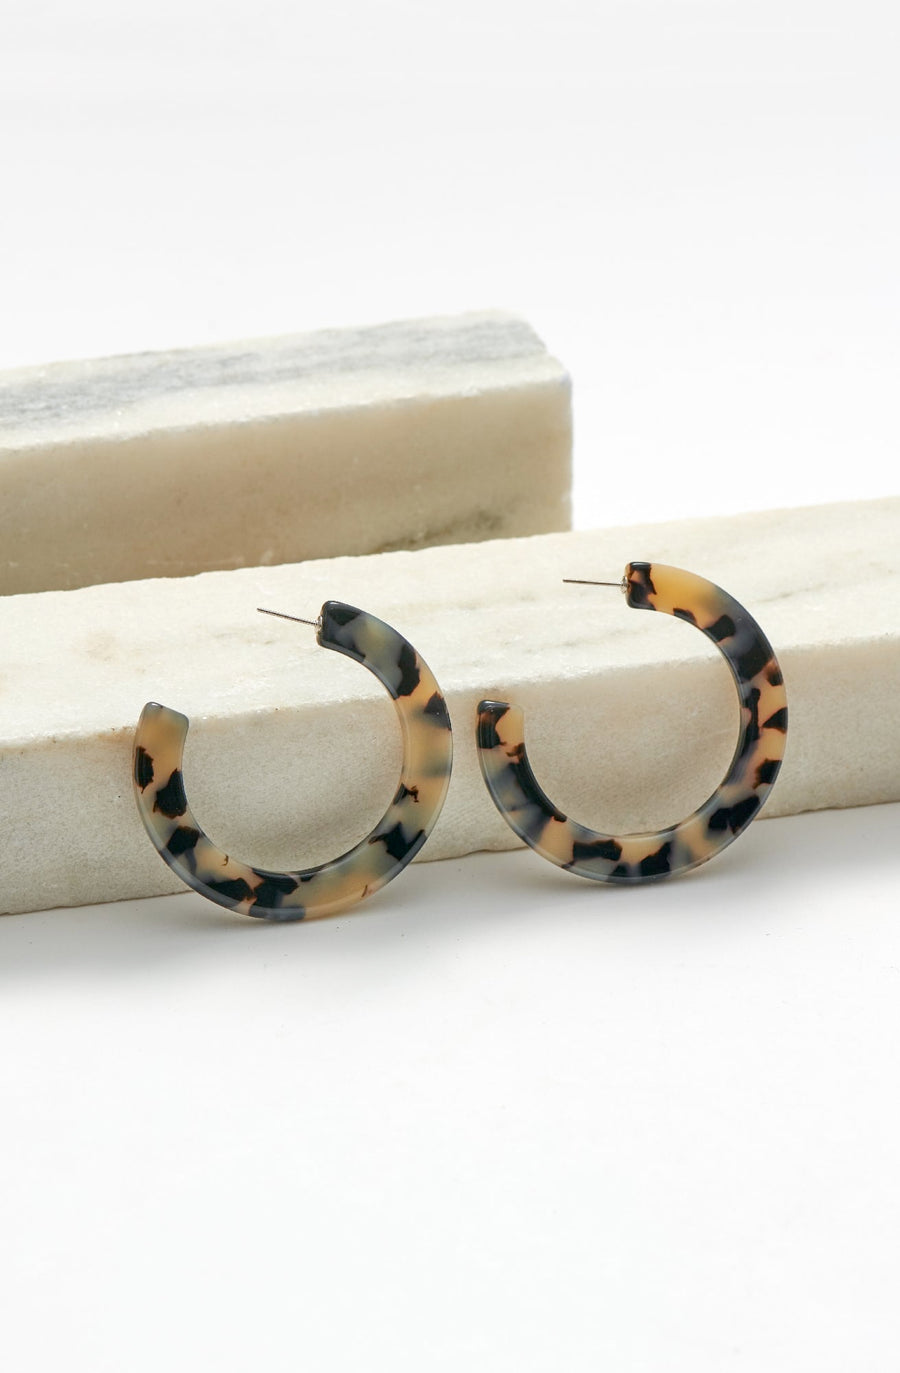 Medium Circular Hoop Earrings-white tortoise